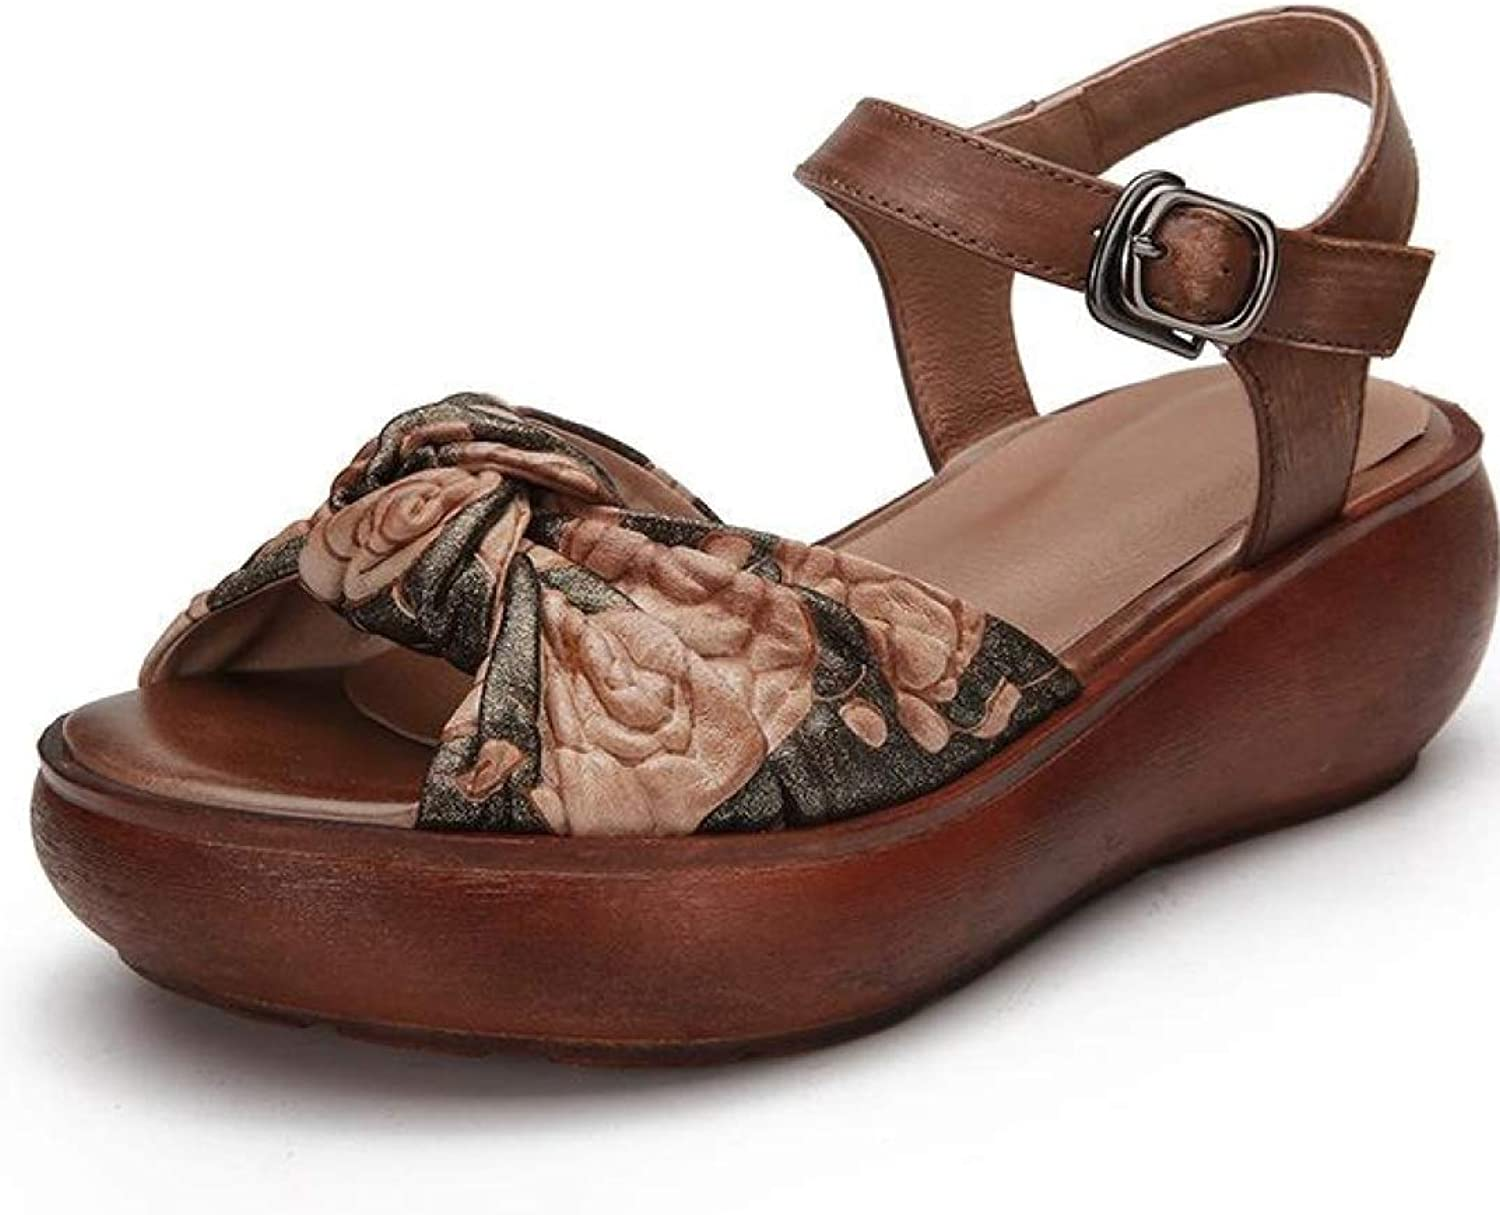 T-JULY Genuine Leather Retro Casual Floral Buckle Wedge Sandals for Women Mde Heel Summer